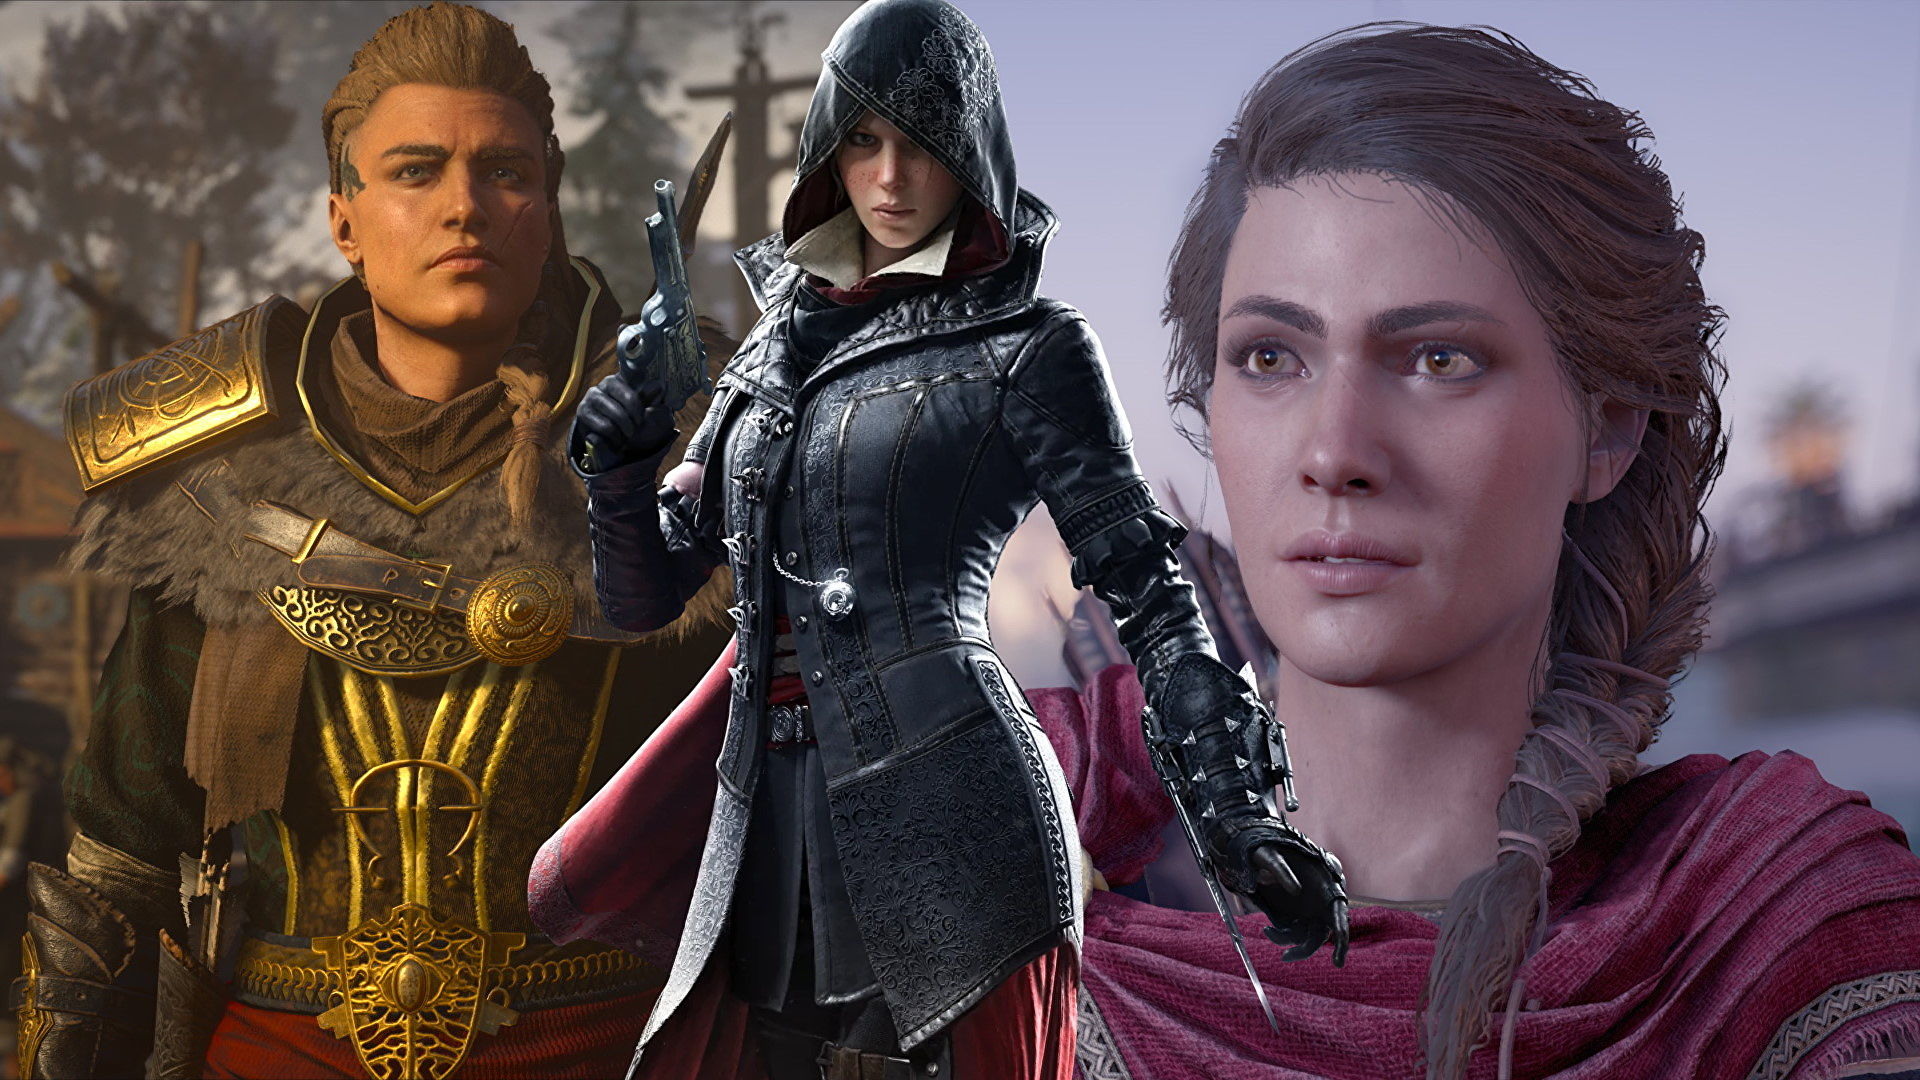 Give us the time-travelling gal pal Assassin's Creed TV show we deserve, you cowards